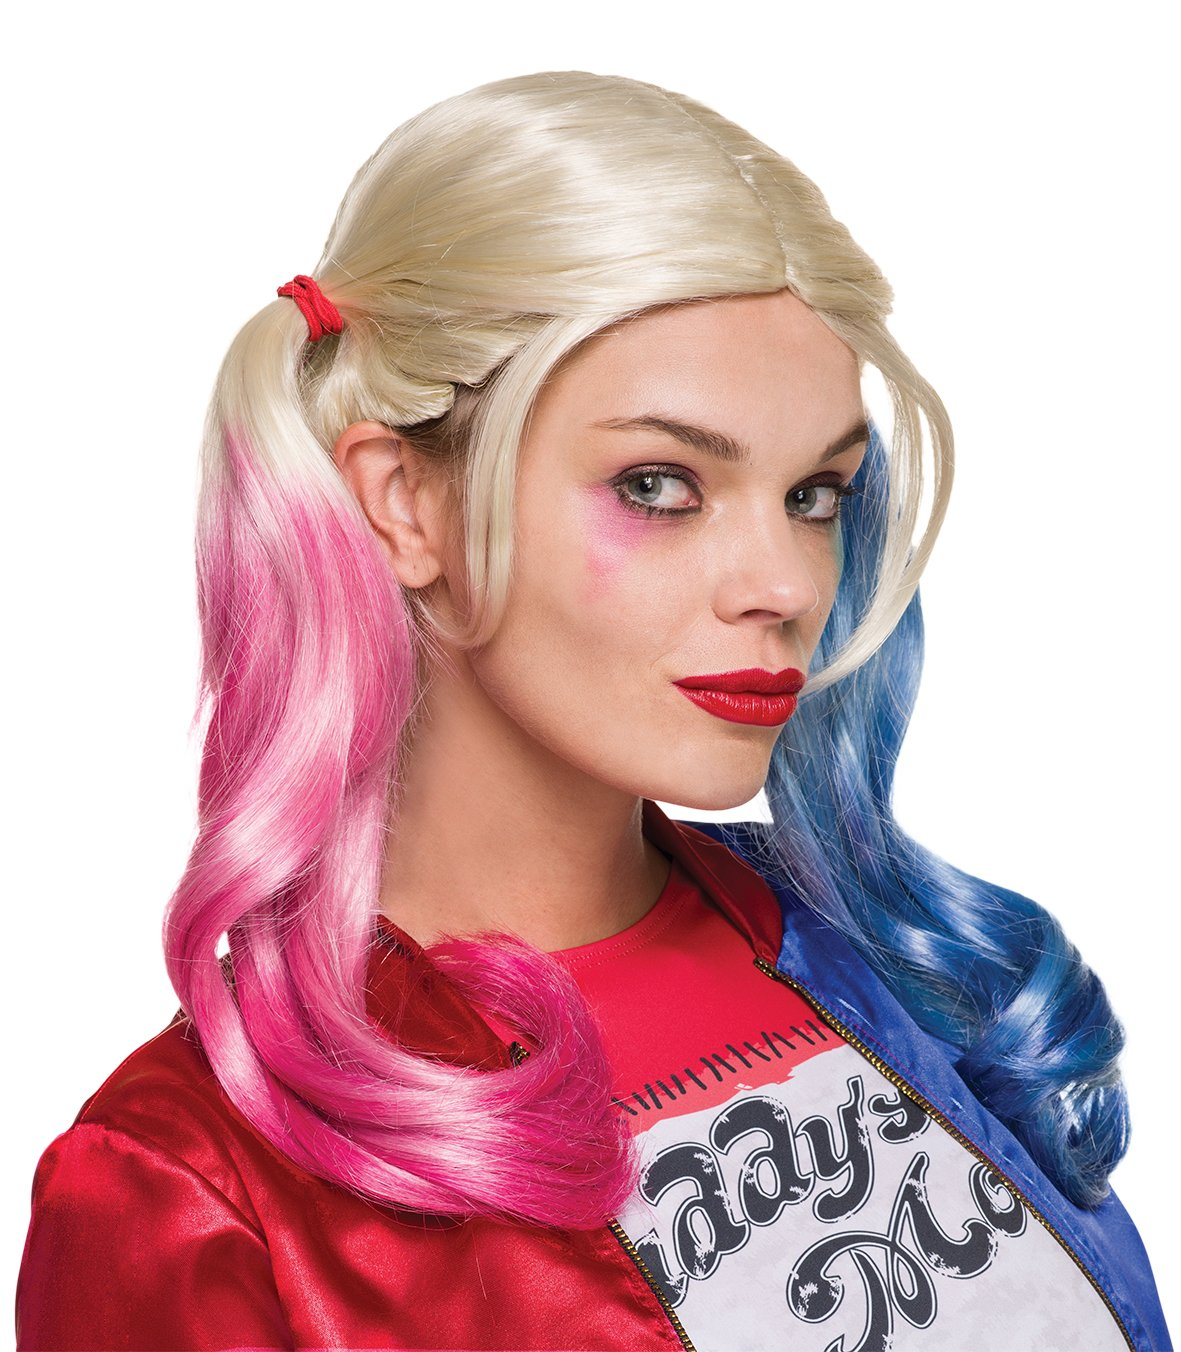 Rubie's Costume CO. Women's Suicide Squad Harley Quinn Value Wig As Shown One Size Rubie's Costume Co 33608